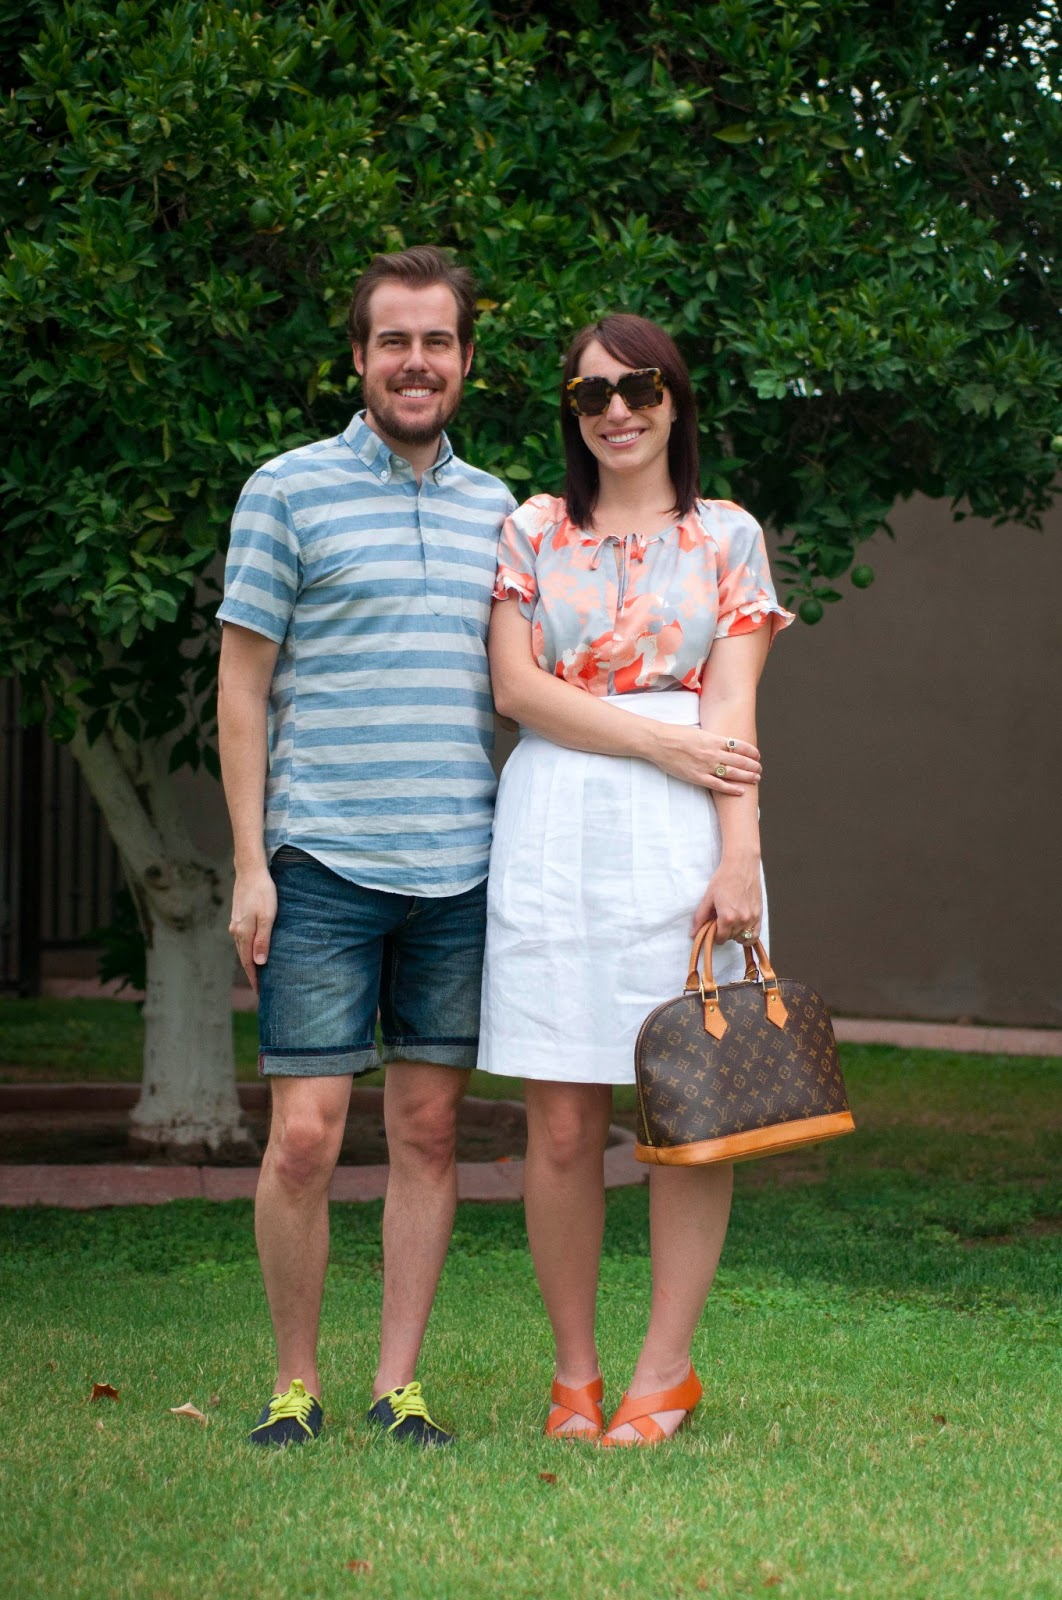 couples fashion, style blog, mens fashion, zara ootd, banana republic, silk blouse, ootd, karen walker sunglasses